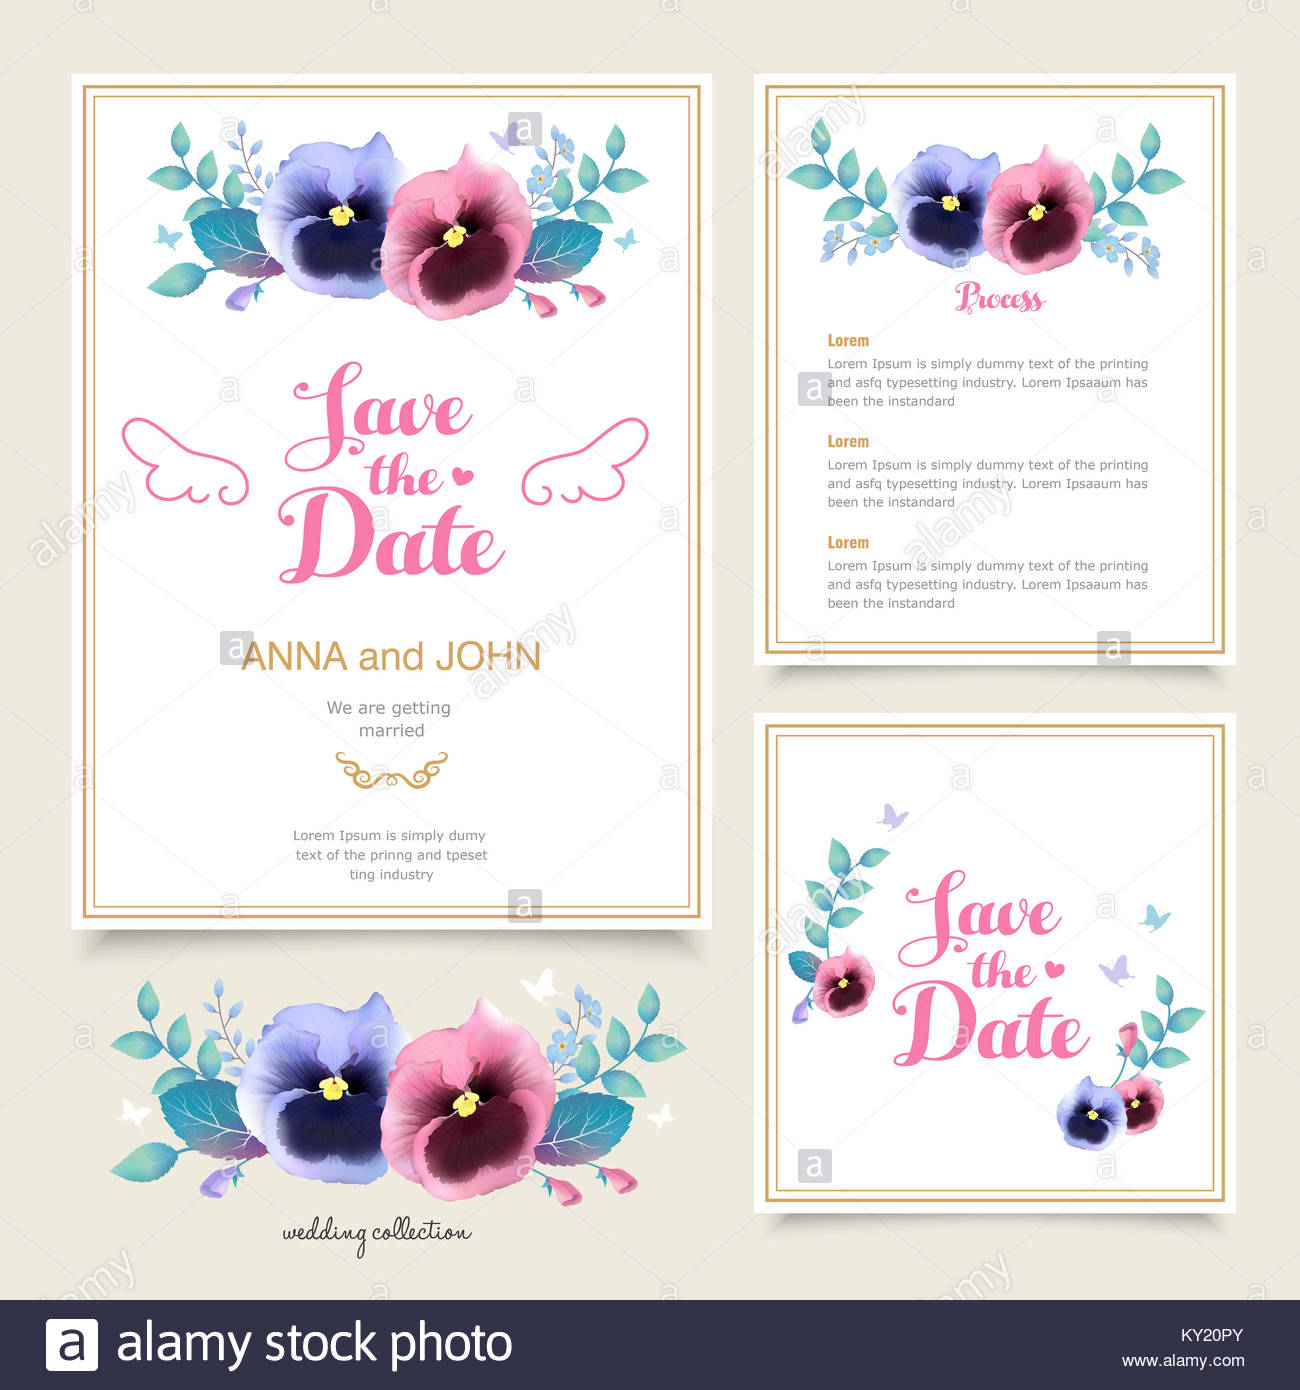 Romantic pansy wedding invitation template design in watercolor romantic pansy wedding invitation template design in watercolor style stopboris Image collections